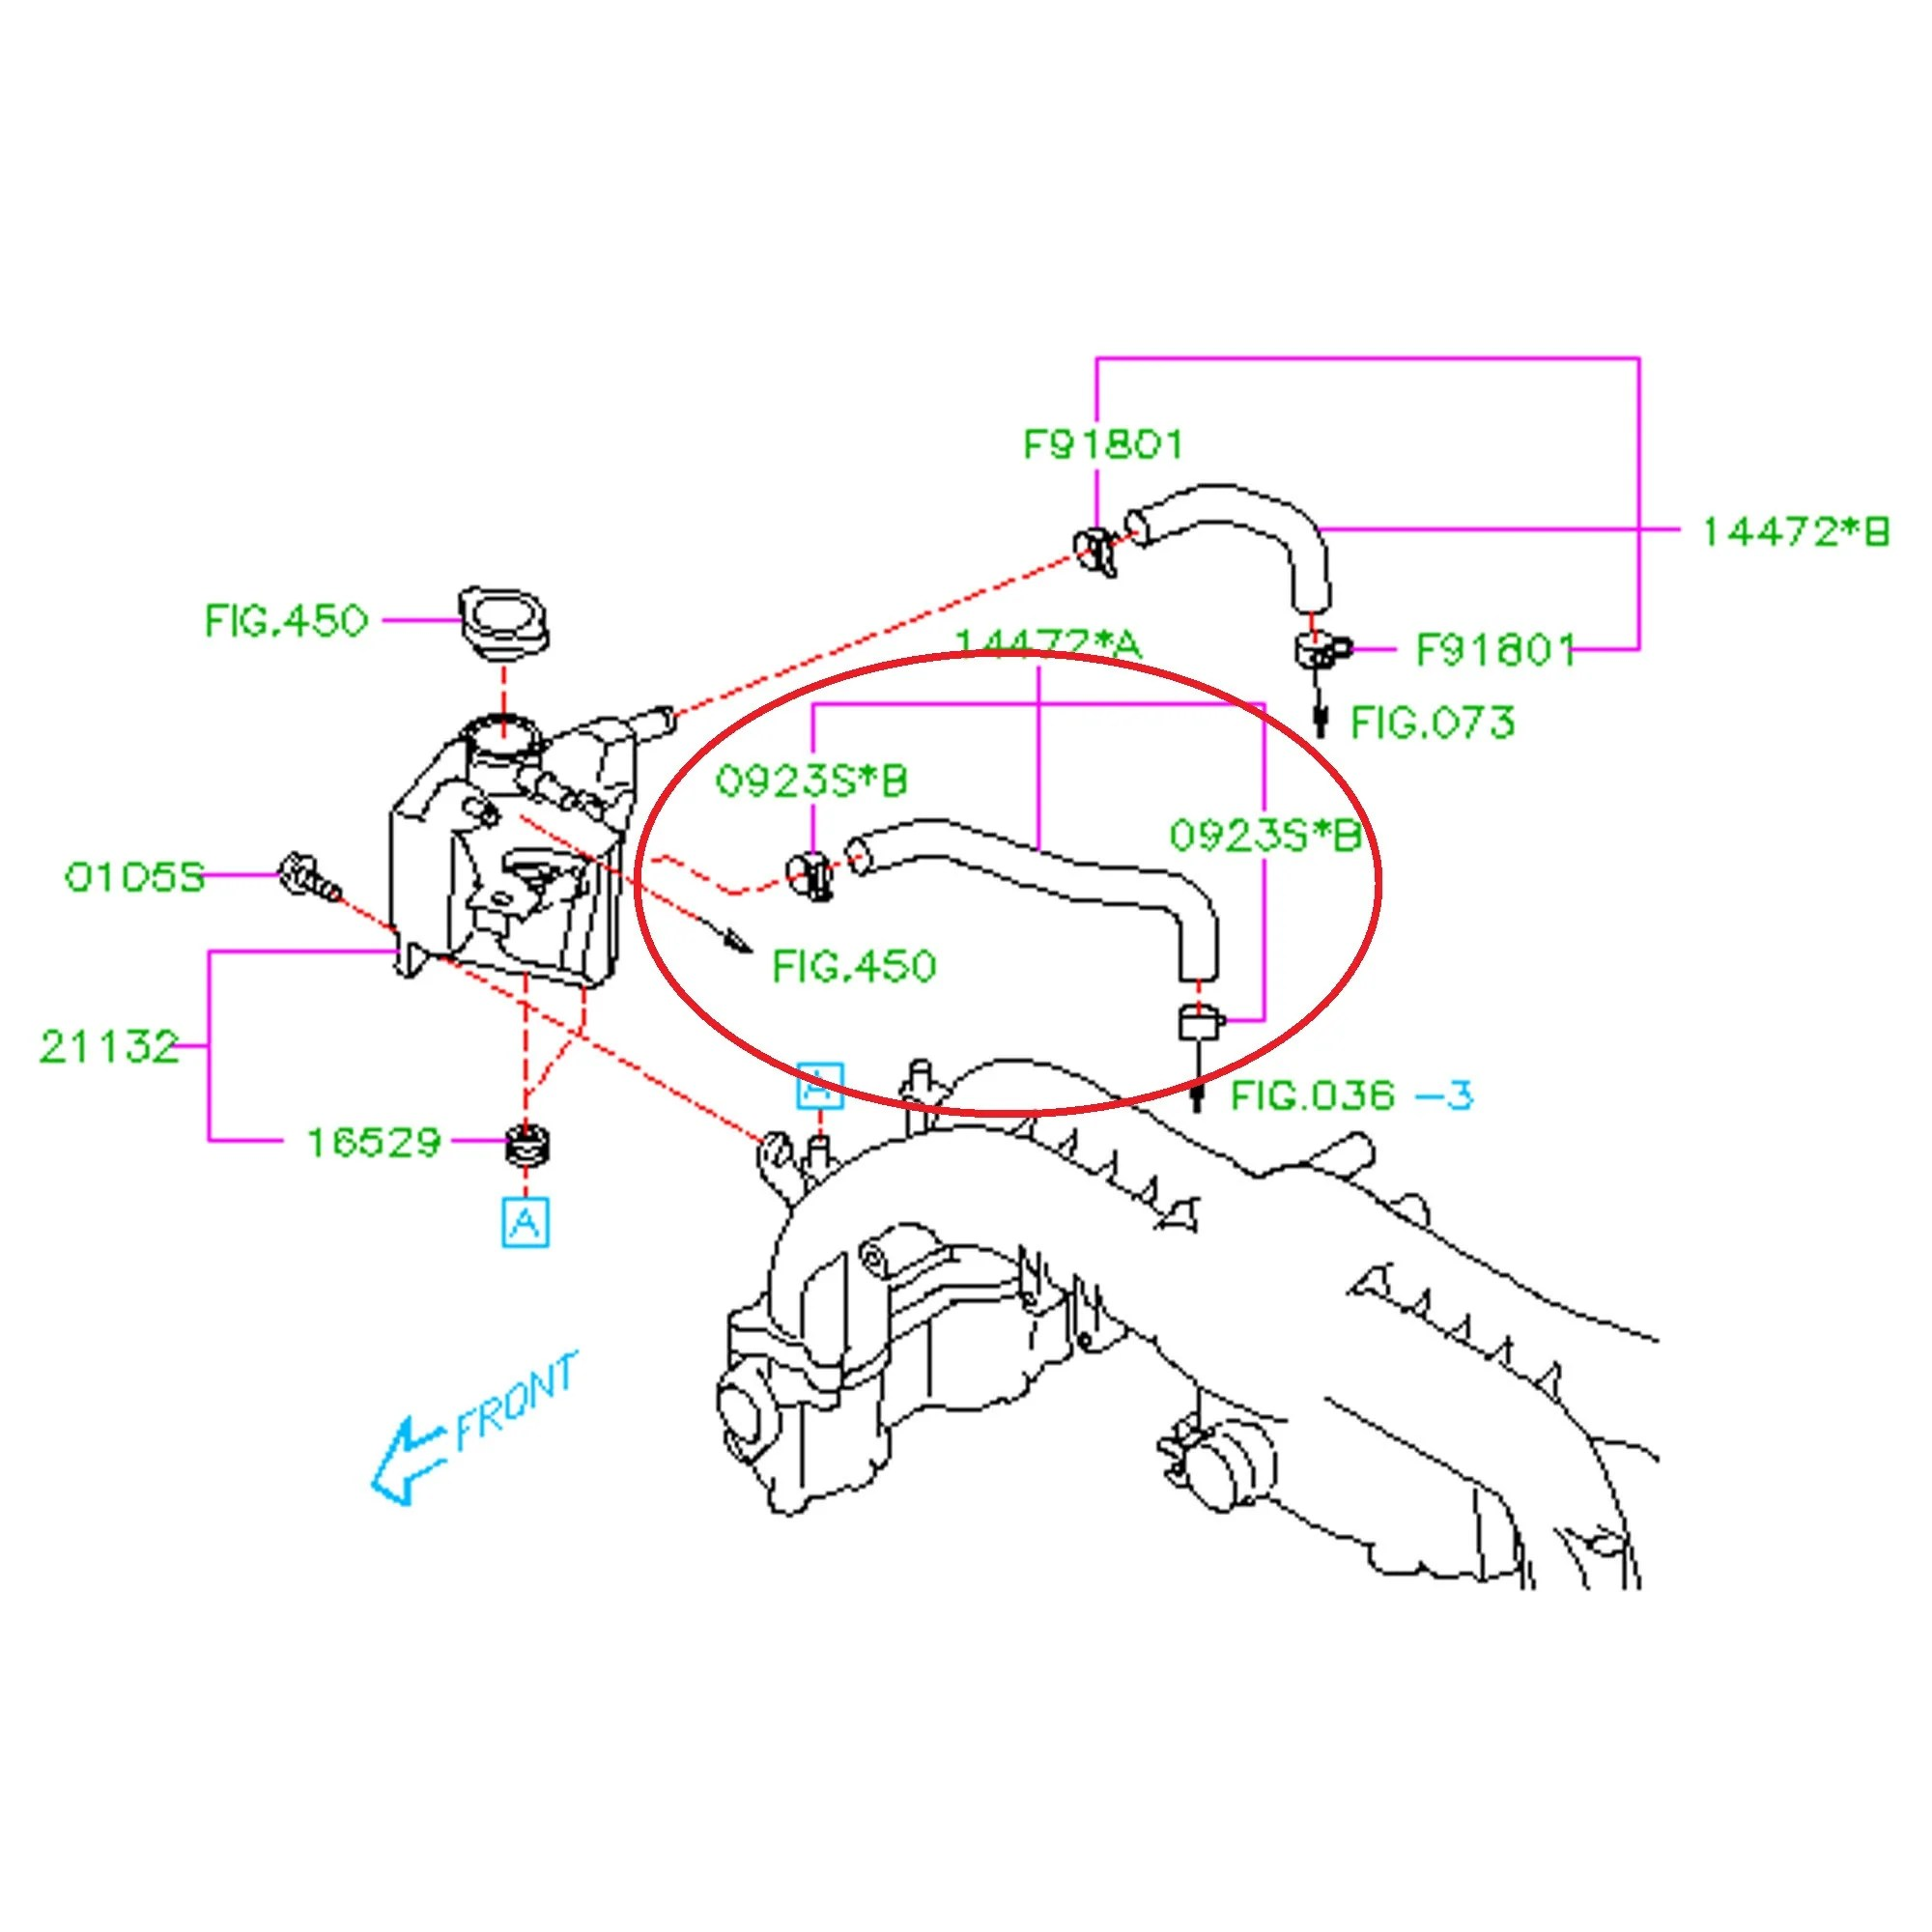 hight resolution of vacuum line diagram on 2004 subaru impreza wrx sti parts diagram subaru wrx wiring diagram 2002